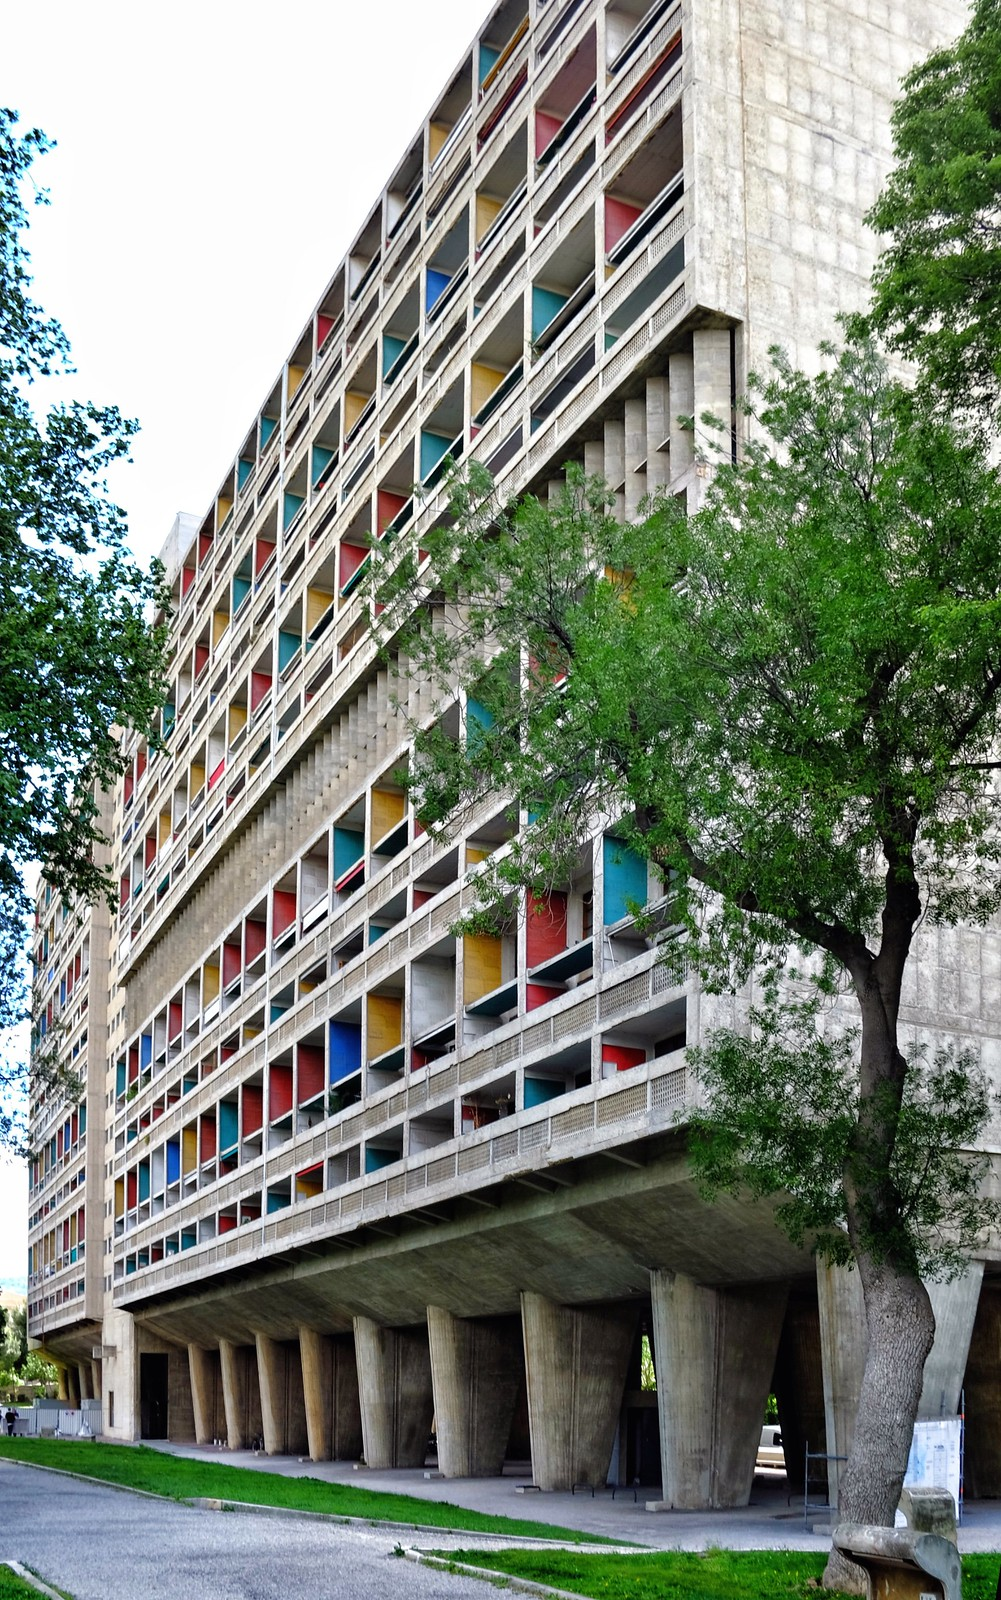 Brutalism: What Is It and Why Is It Making a Comeback?